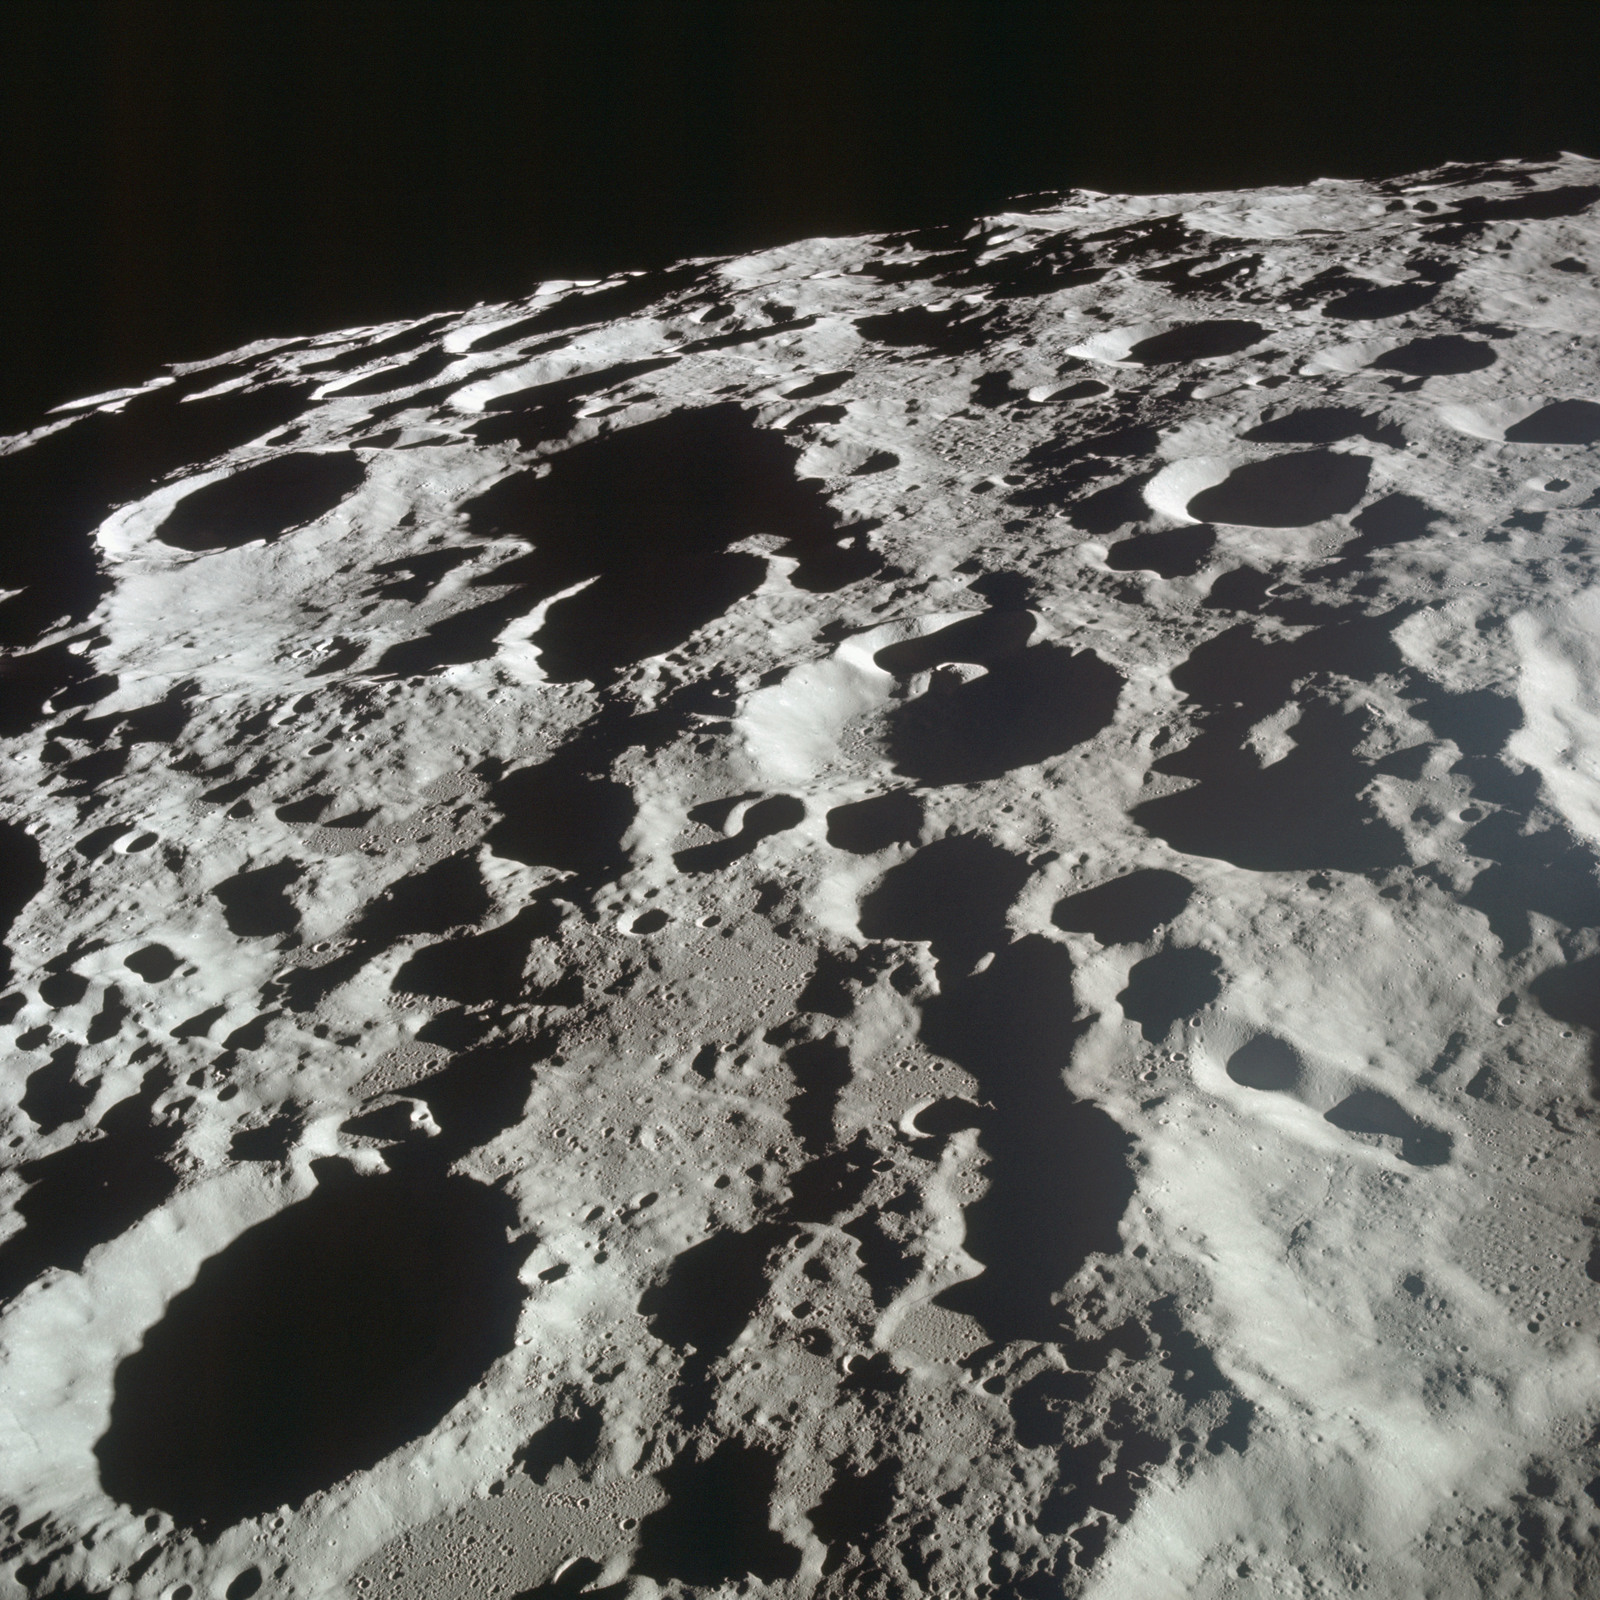 AS11-44-6610 - Apollo 11 - Apollo 11 Mission image - View of Moon limb, Crater 309 and 308